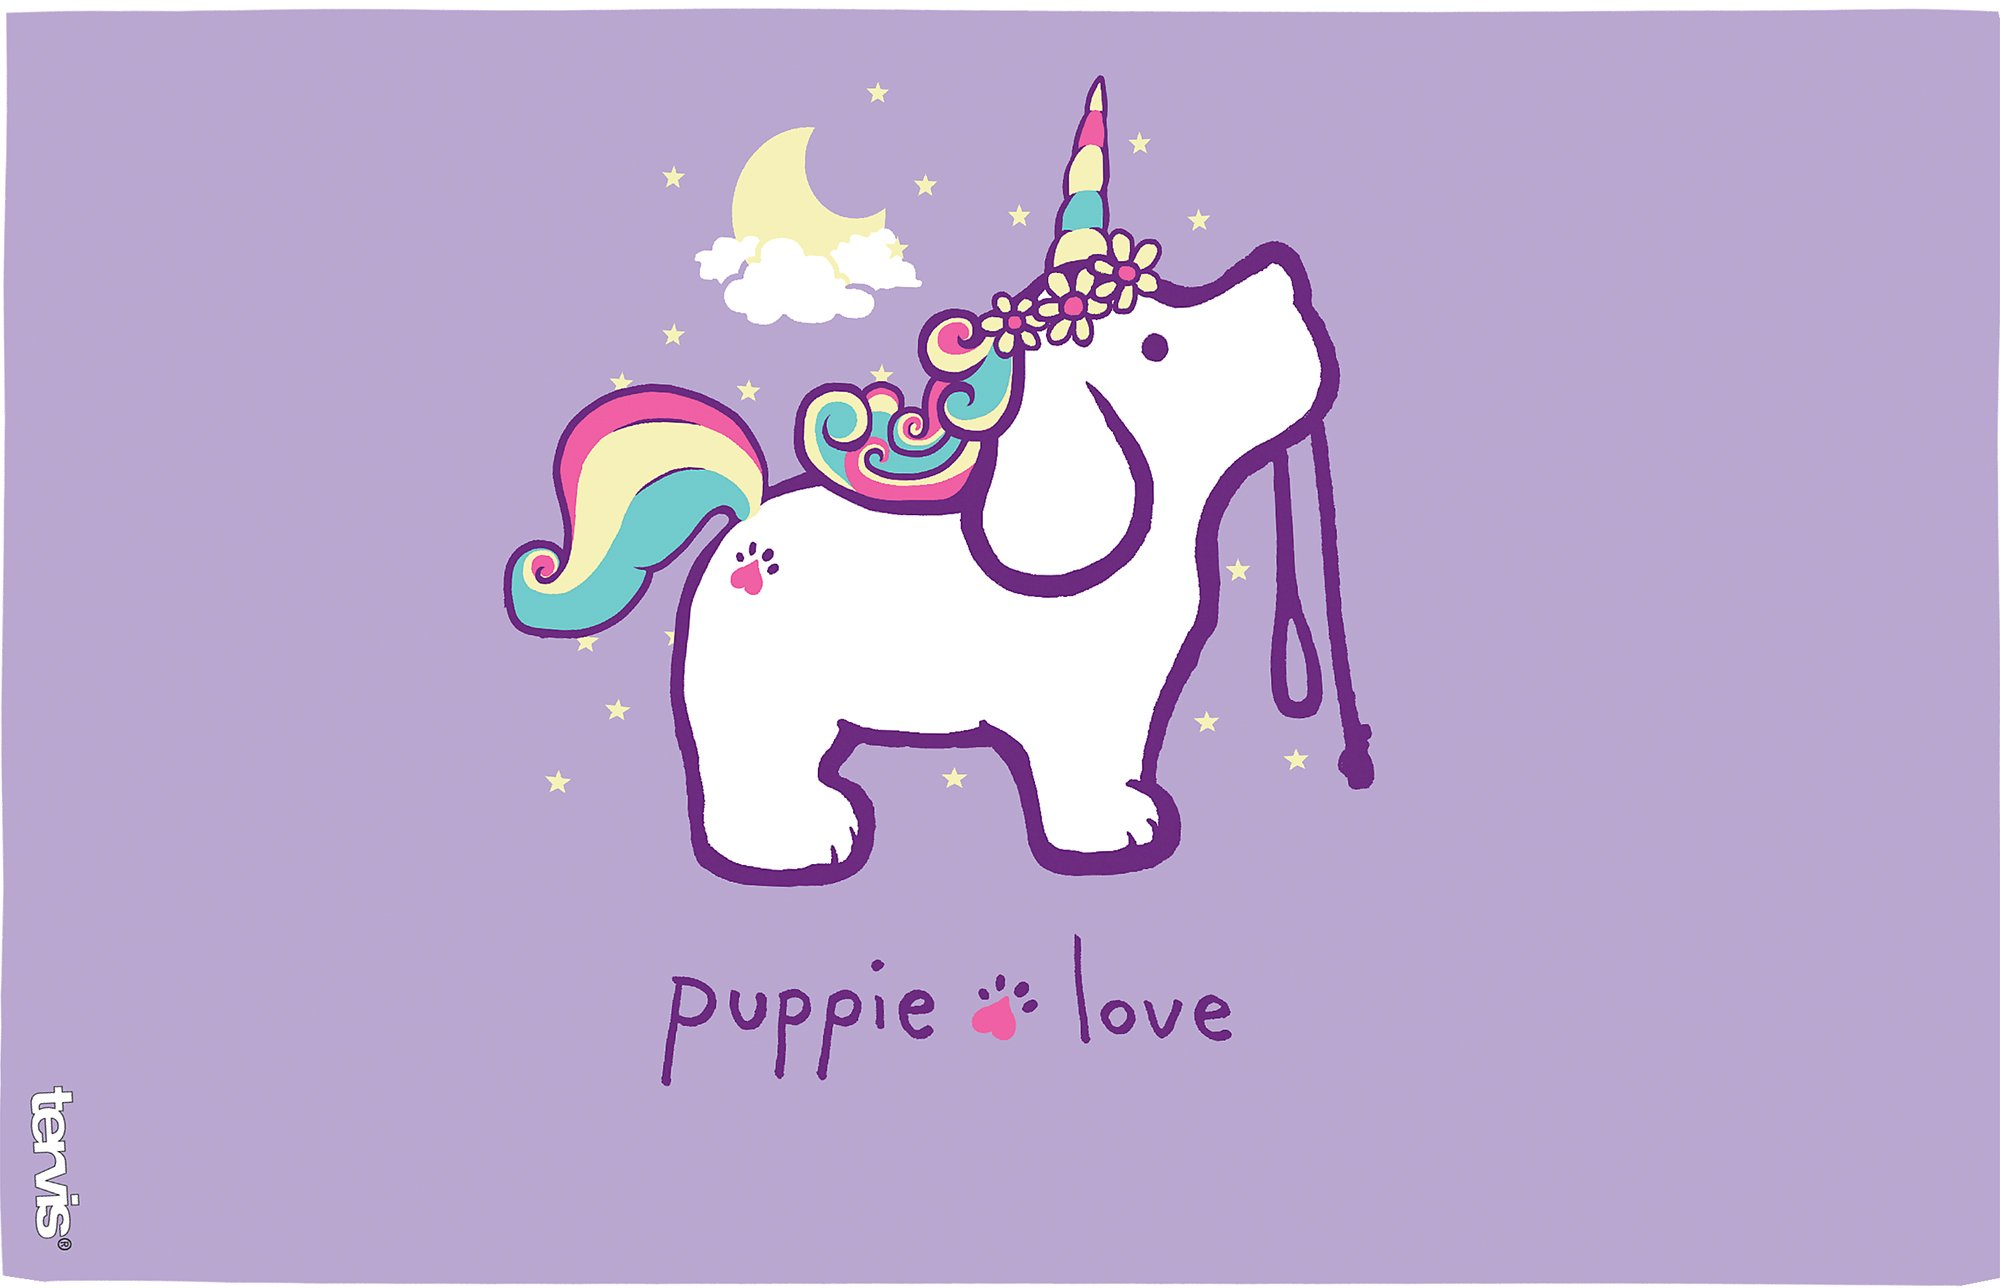 Tervis 1288773 Puppie Love - Unicorn Puppy Tumbler with Wrap and Royal Purple Lid 16oz, Clear by Tervis (Image #2)